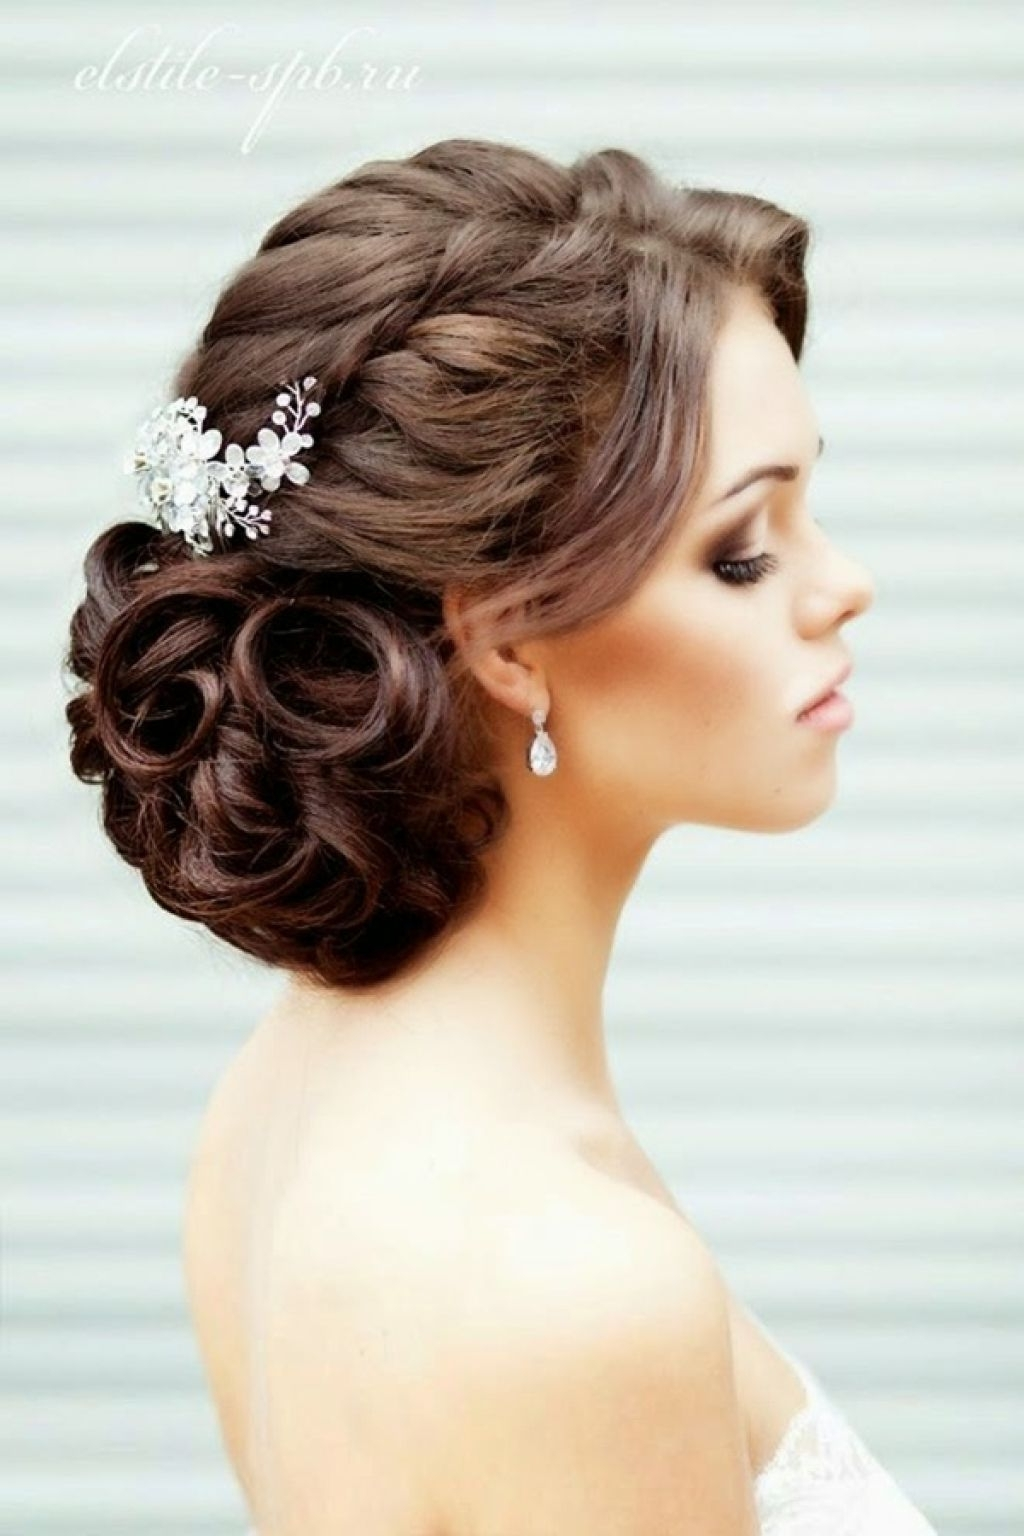 3 Easy Updo Hairstyles For Long Hair Hairstyle Tips Bridesmaid Regarding Fashionable Long Hair Up Wedding Hairstyles (View 2 of 15)